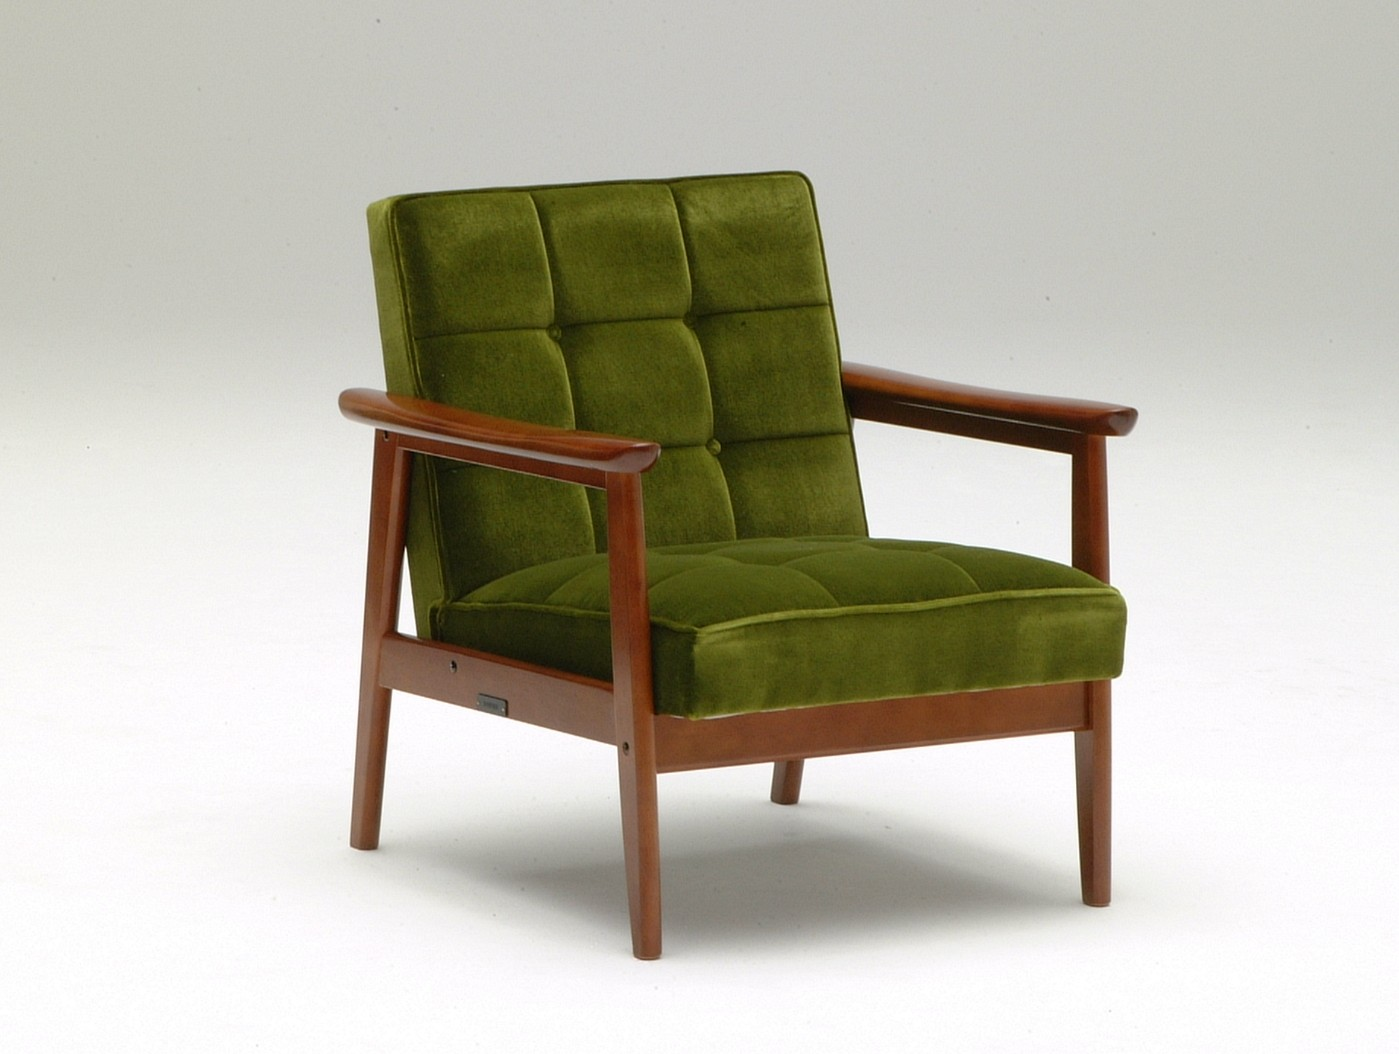 W36150QW K- chair_one seater_moquette green